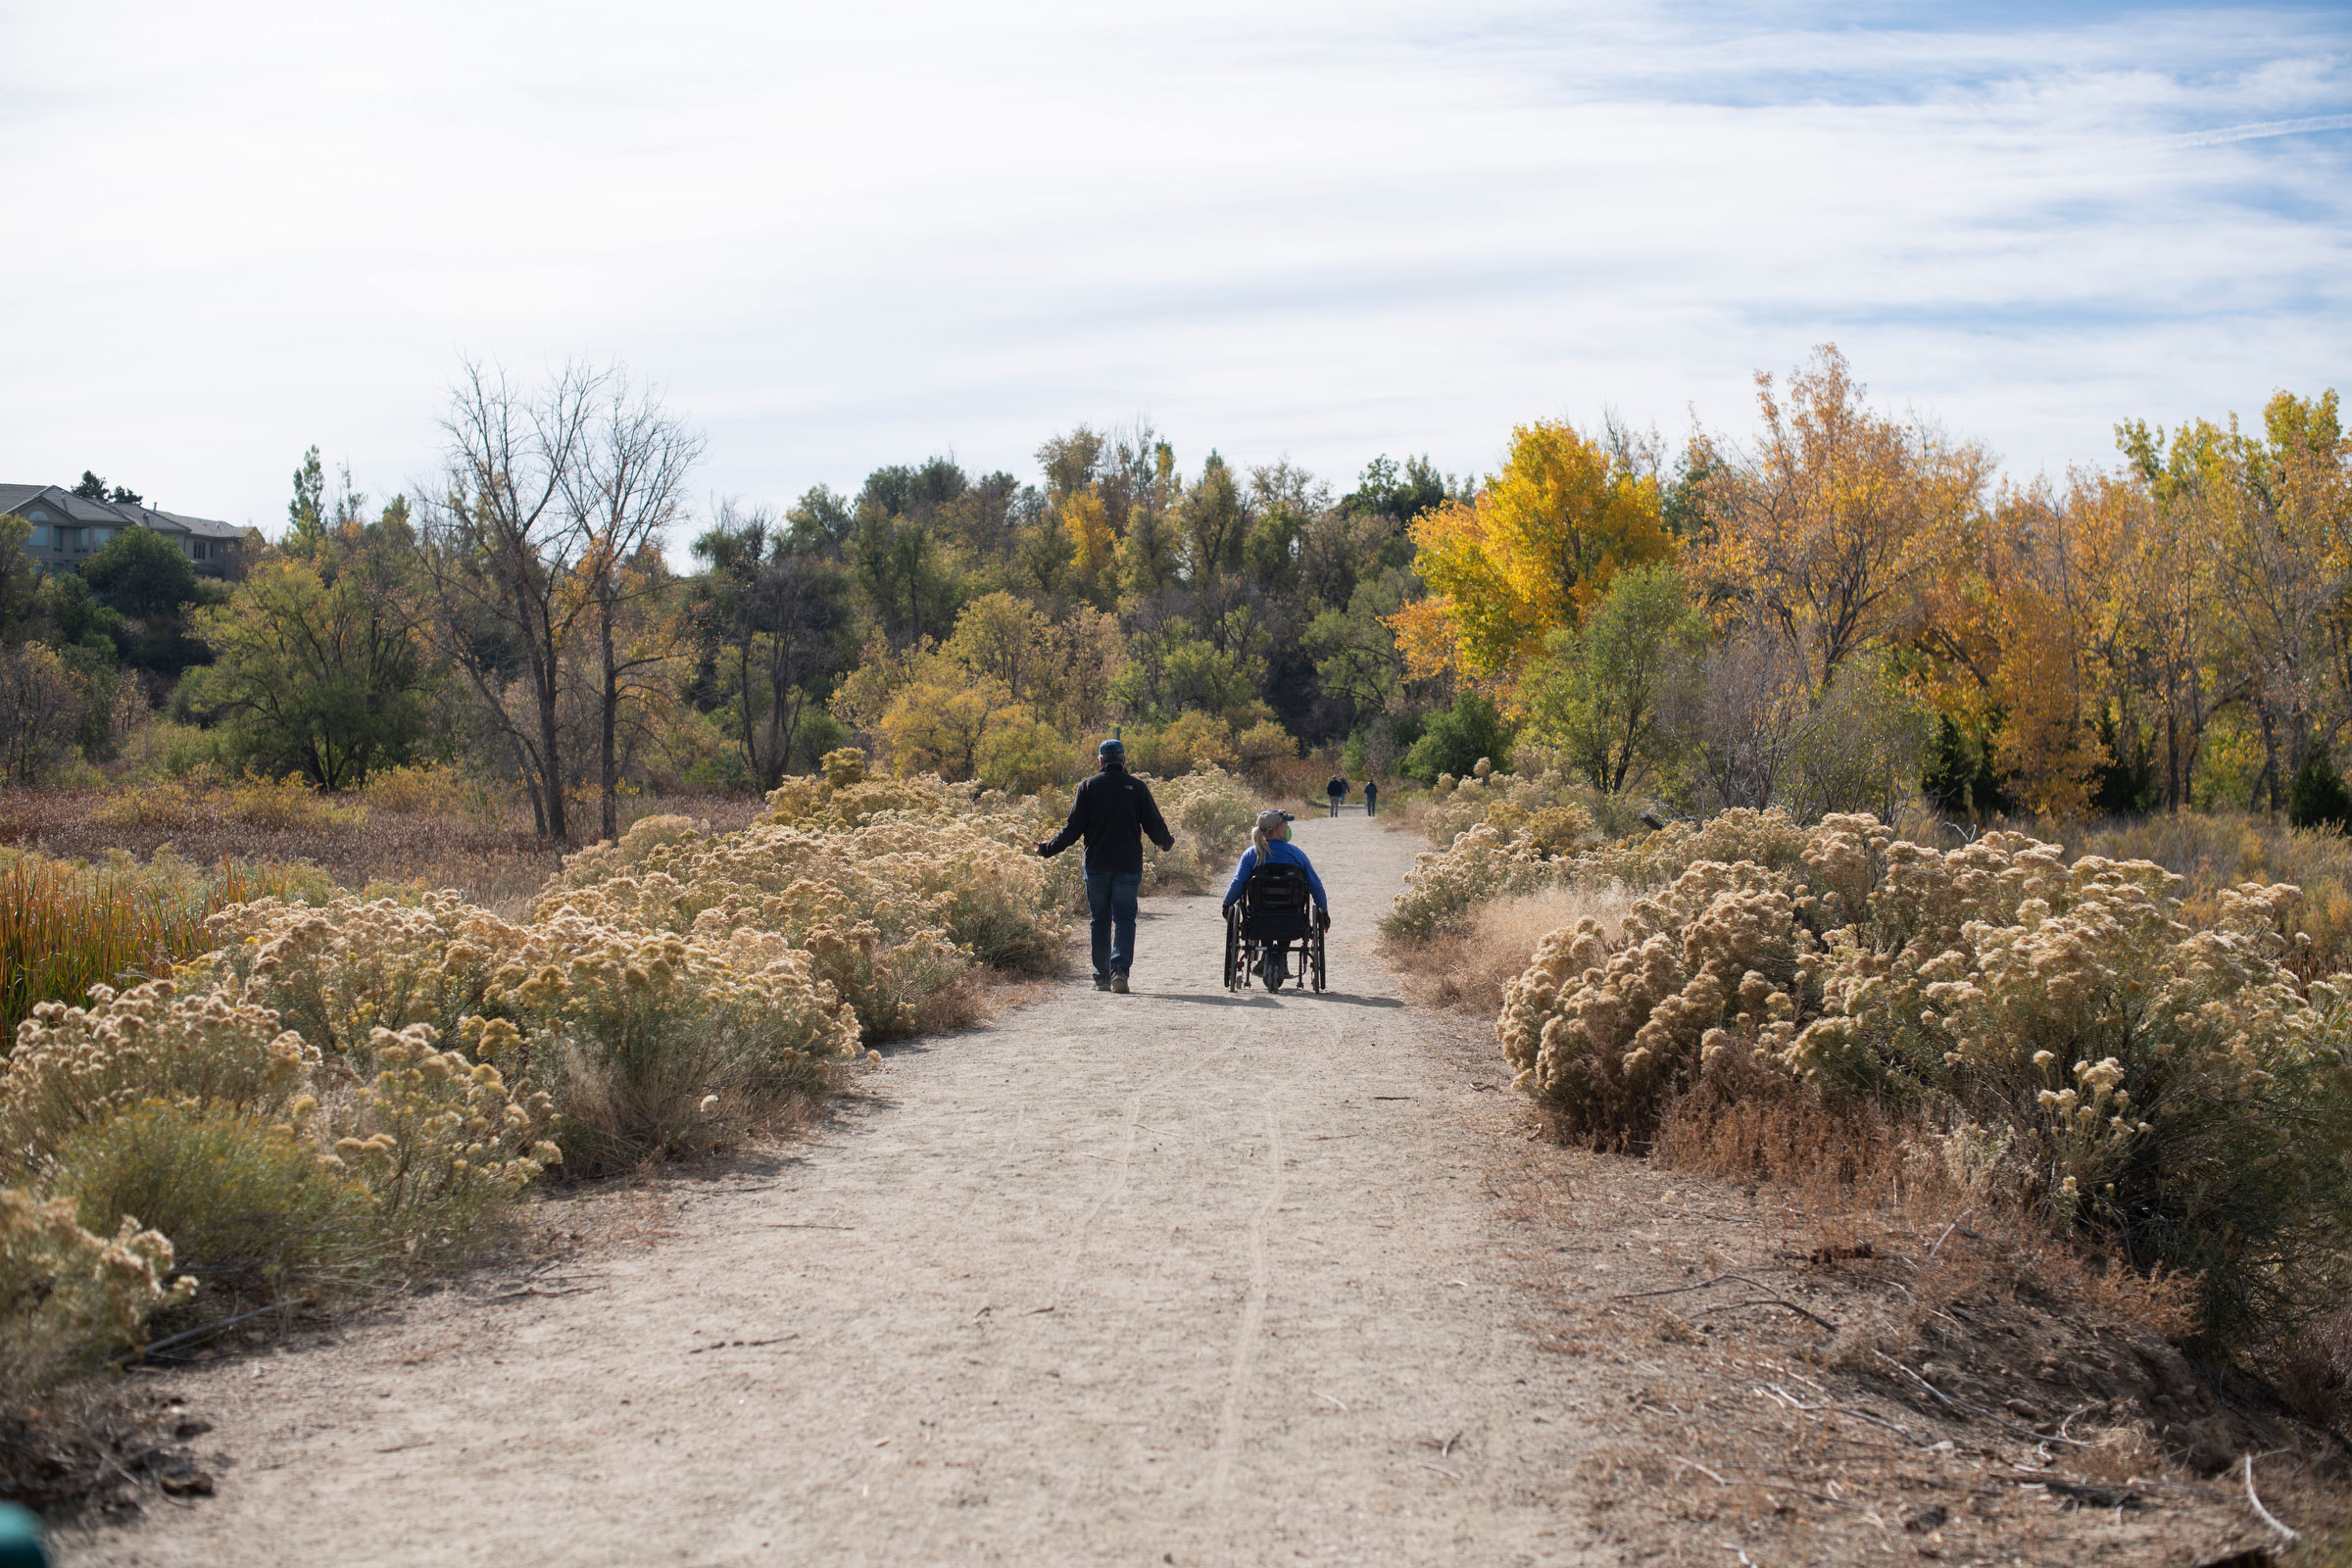 Karl Brummert (left) and Chris Layne (right) make their way through Prospect Park, one of three parks in Denver that Roark has identified as wheelchair friendly enough for serious birding. Rachel Woolf